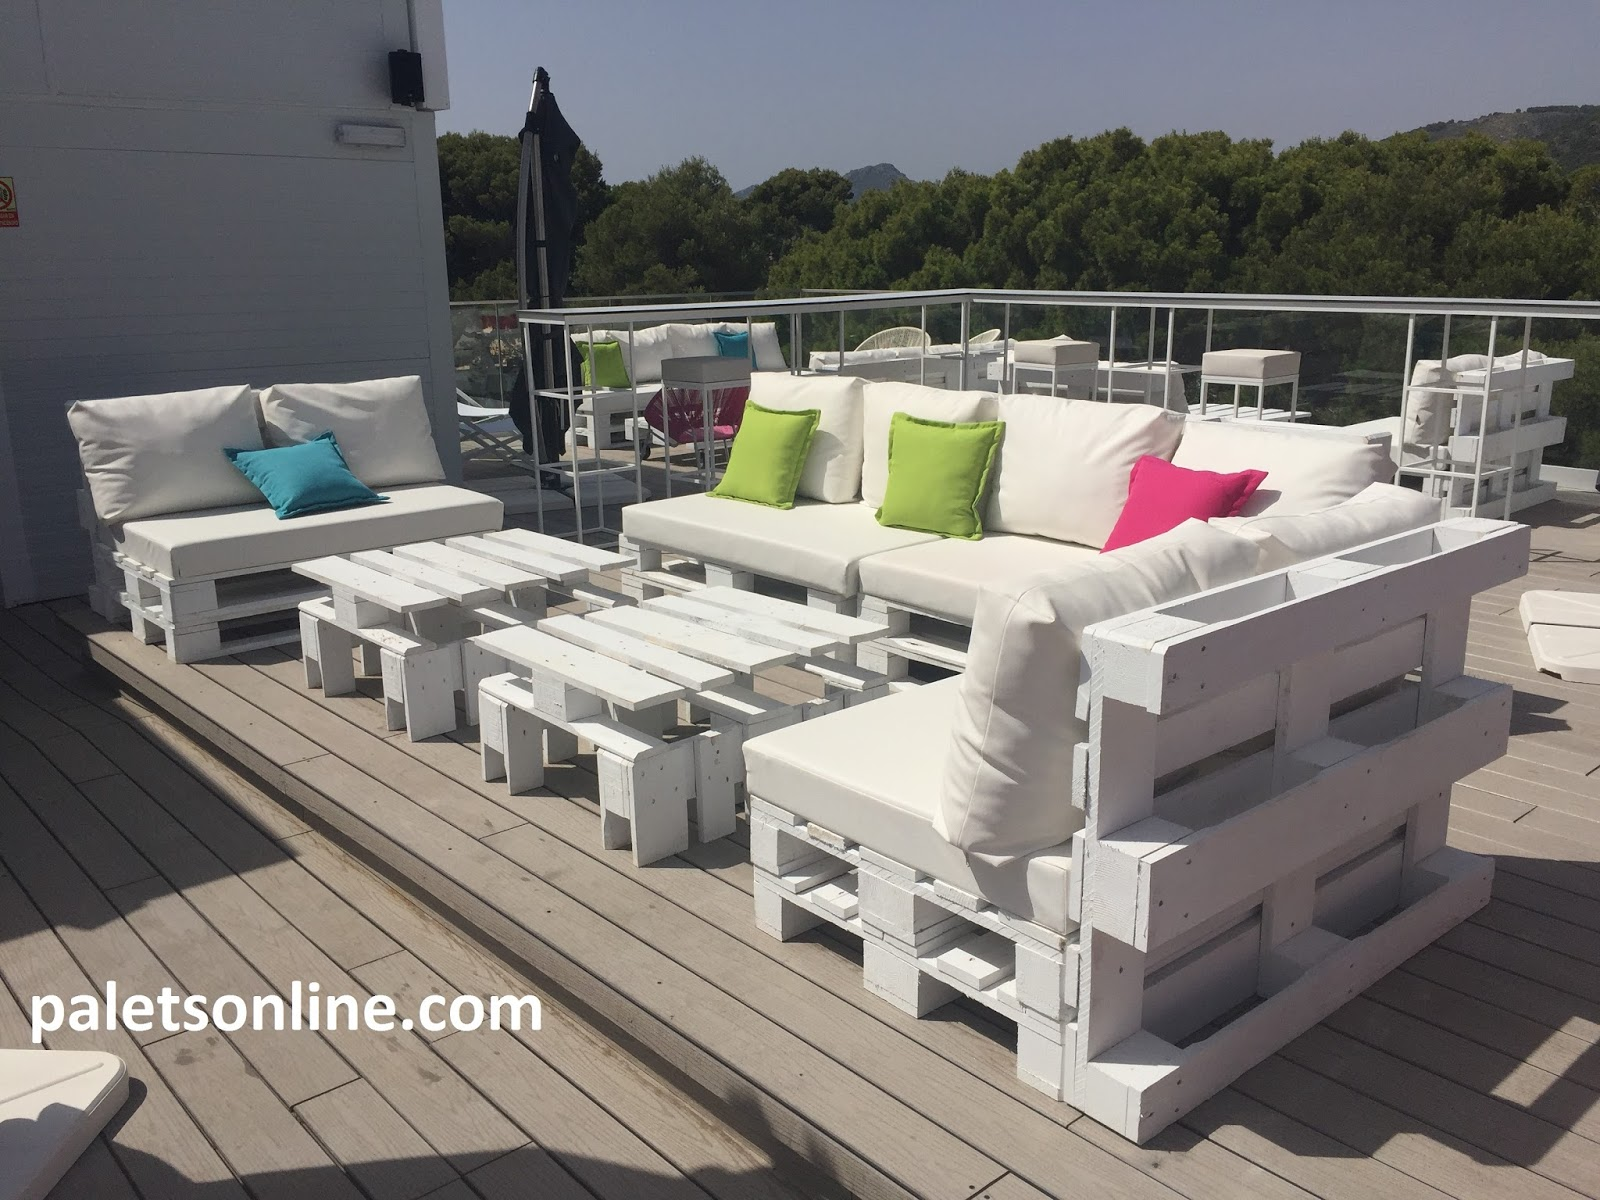 chill out europalets color blanco paletsonlinecom - Chill Out Con Palets